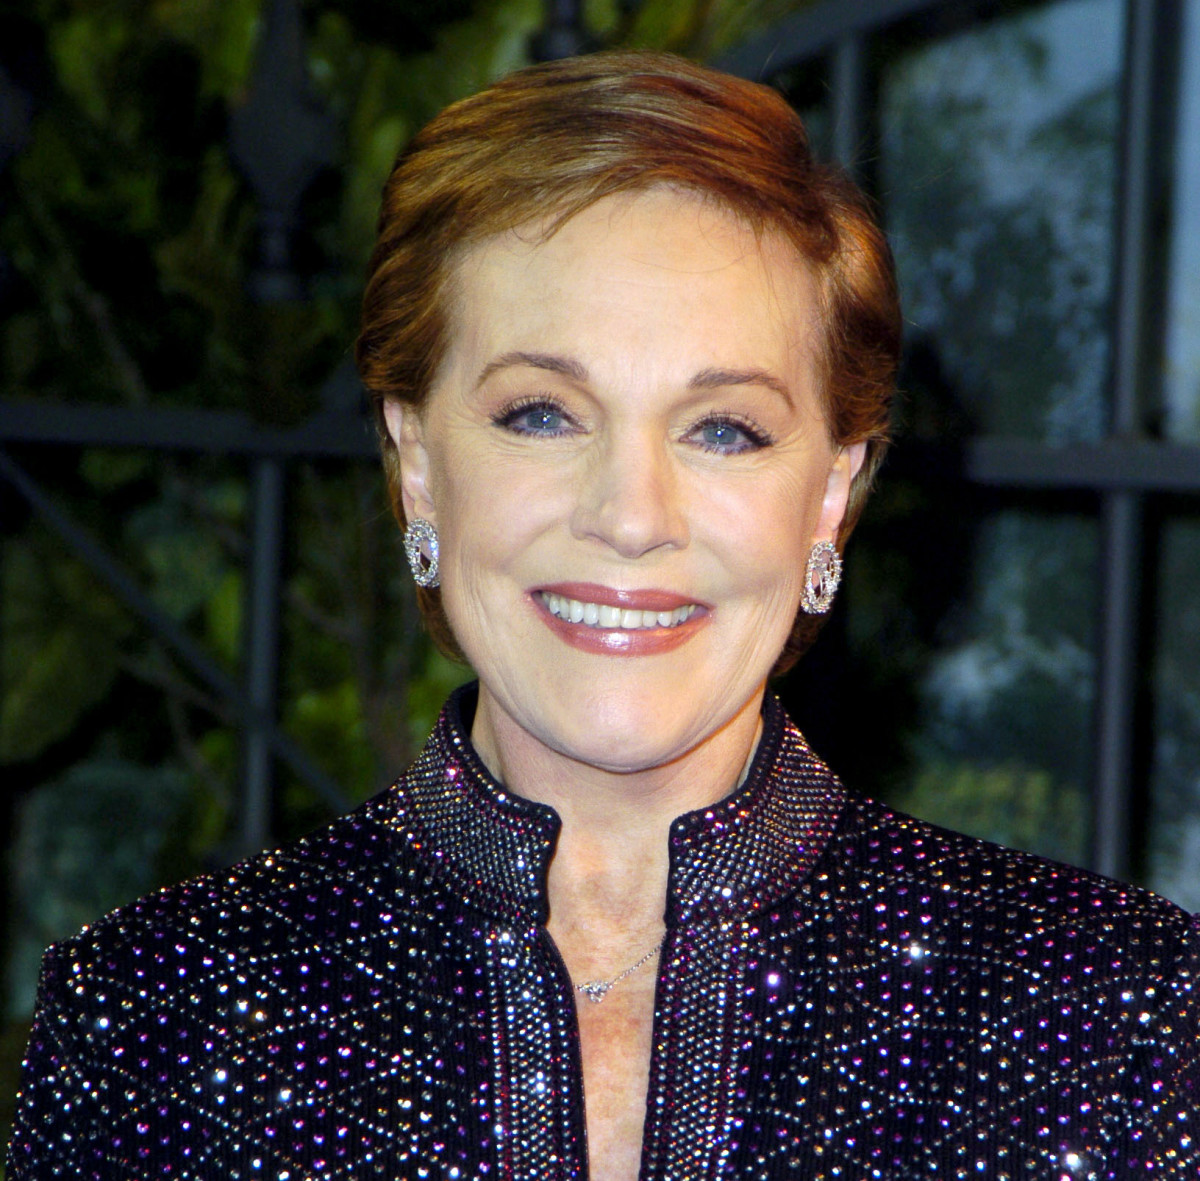 julie andrews Julie andrews is an oscar-winning actress and singer known for her roles in  stage musicals like 'my fair lady' and 'camelot' as well as films.